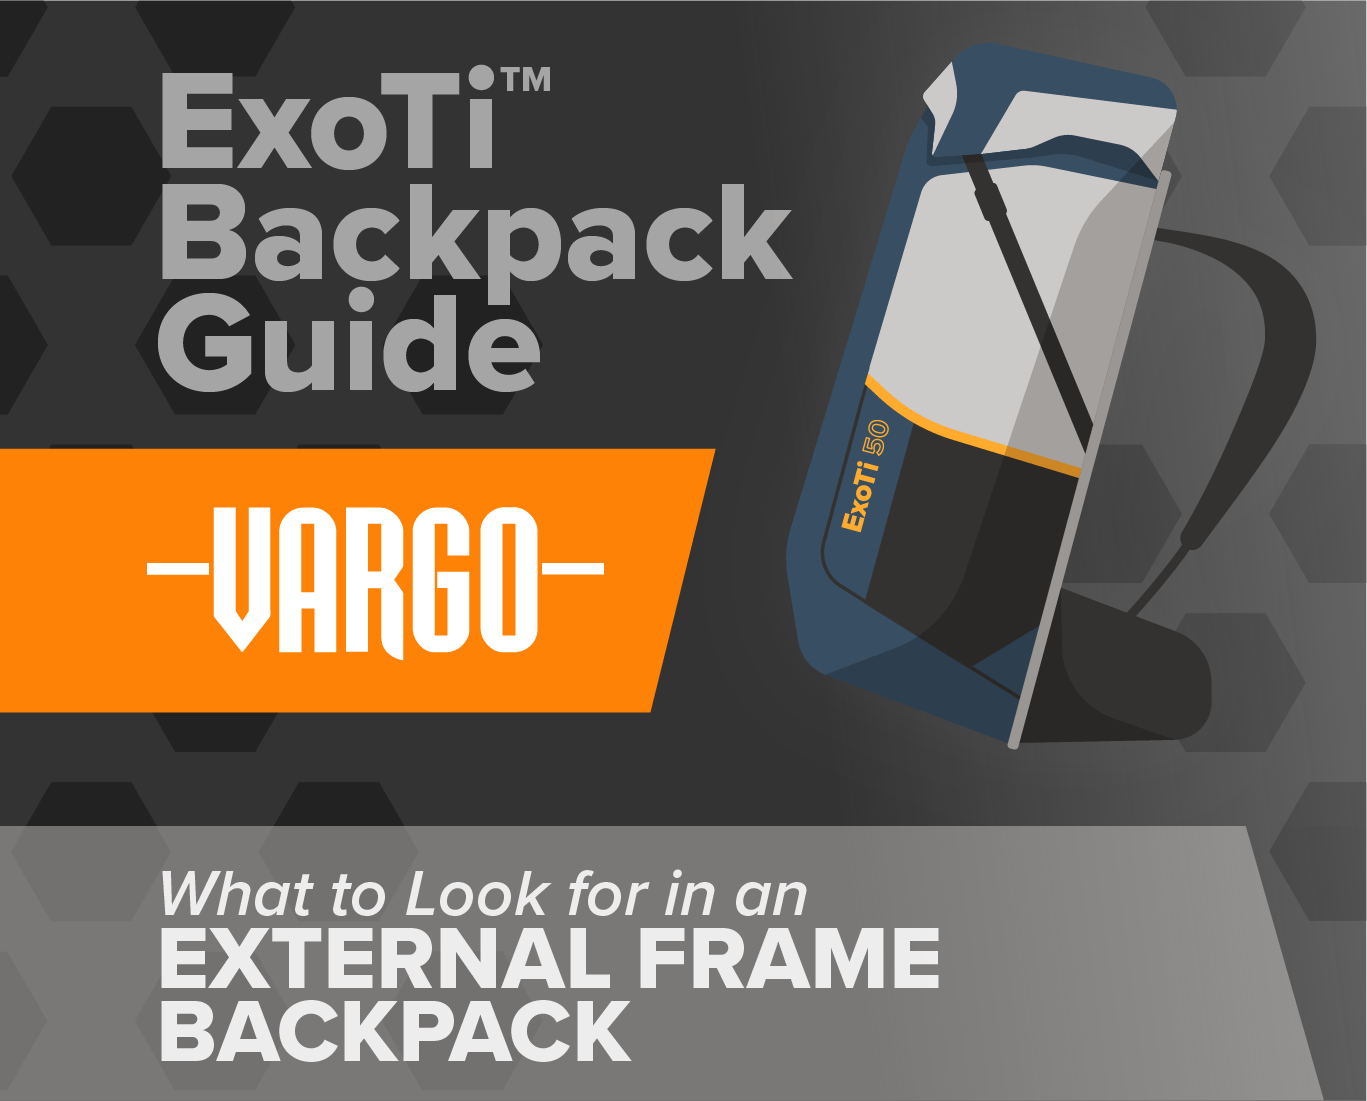 1716050c8f What to Look for in an External Frame Backpack - Vargo Blog